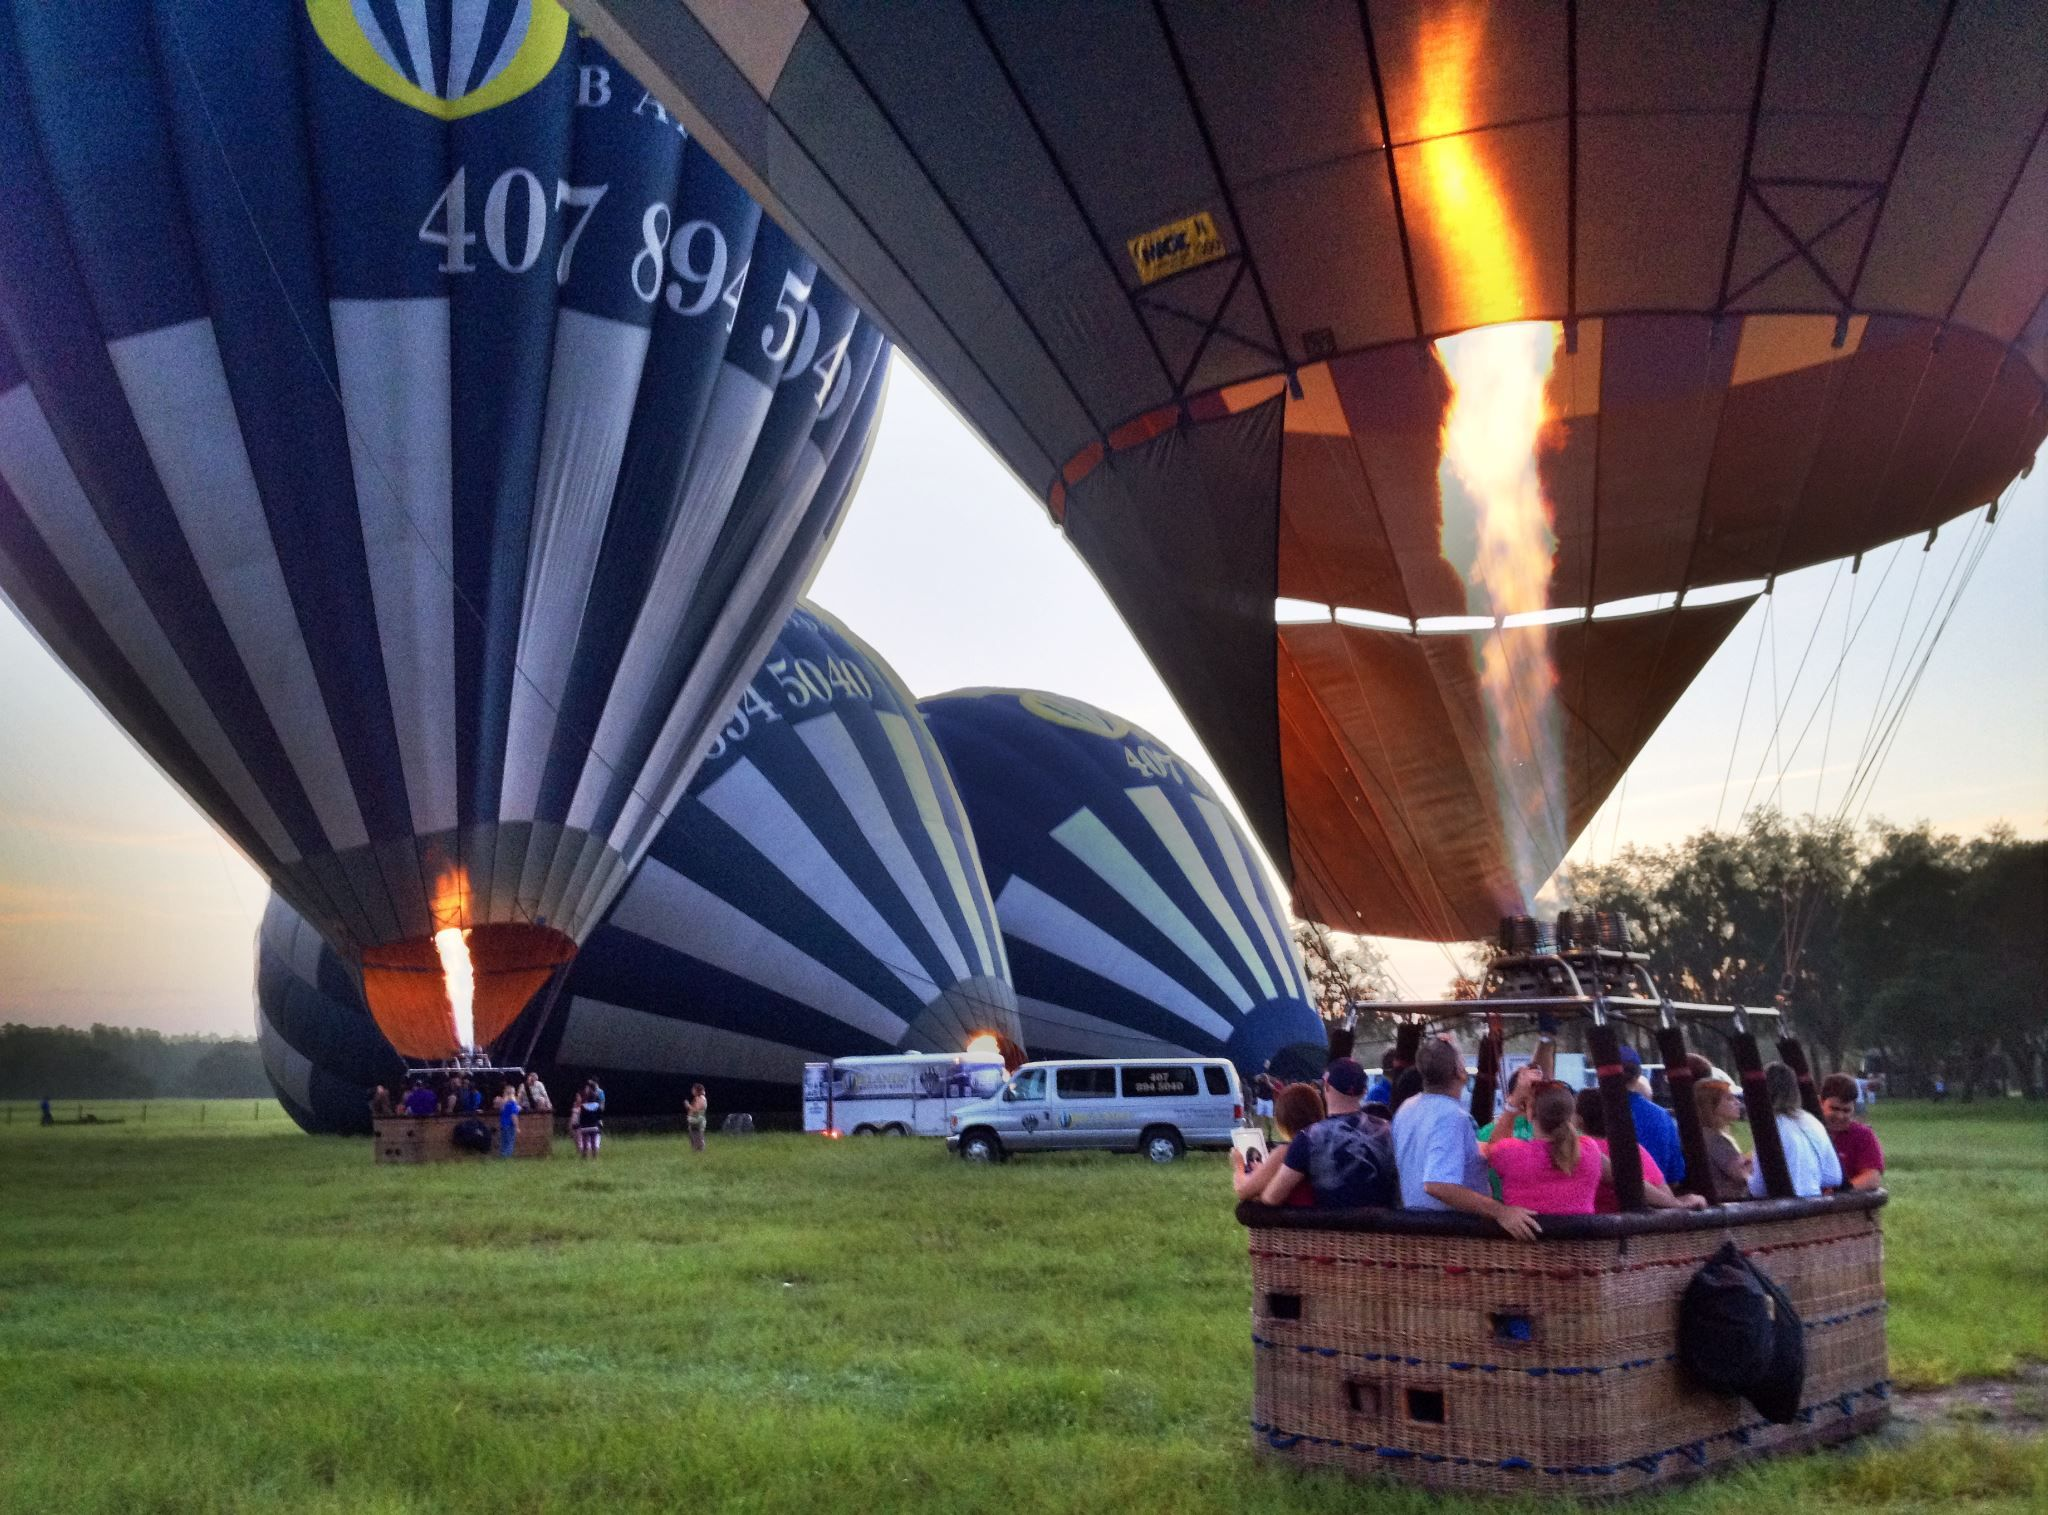 OBR taking off this find August Morning Balloon rides